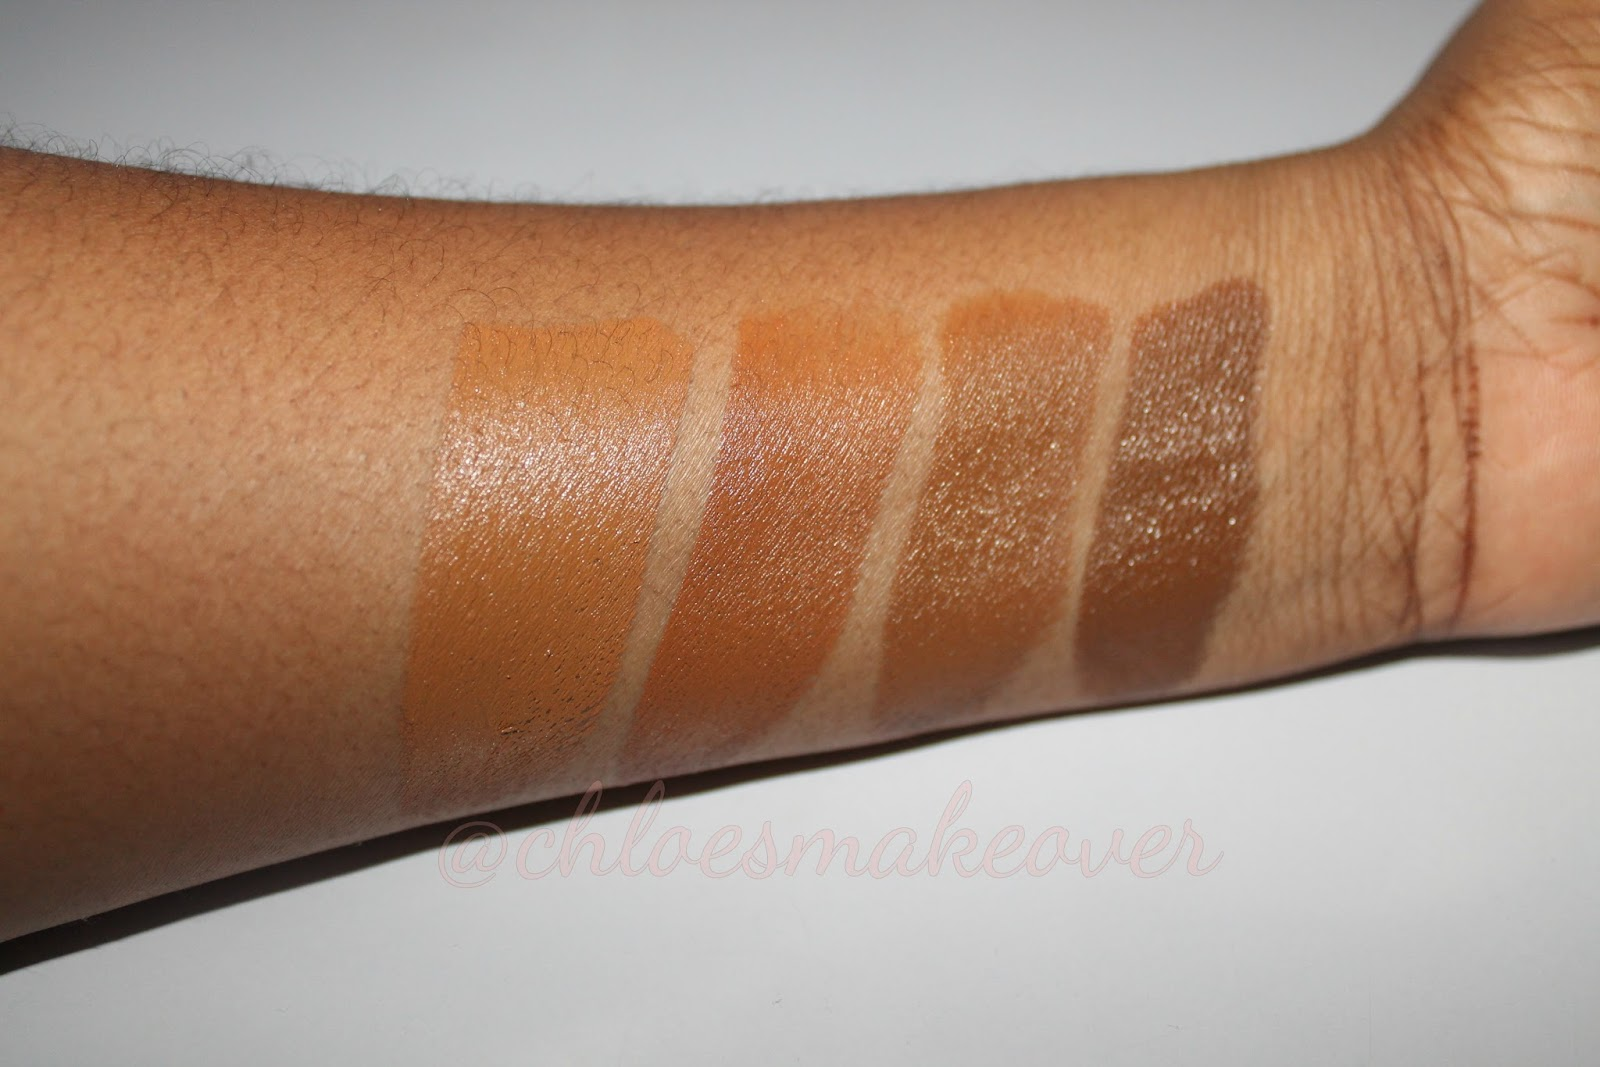 TRUE COLOR Skin Perfecting Stick Foundation SPF 15 by Black Opal #7